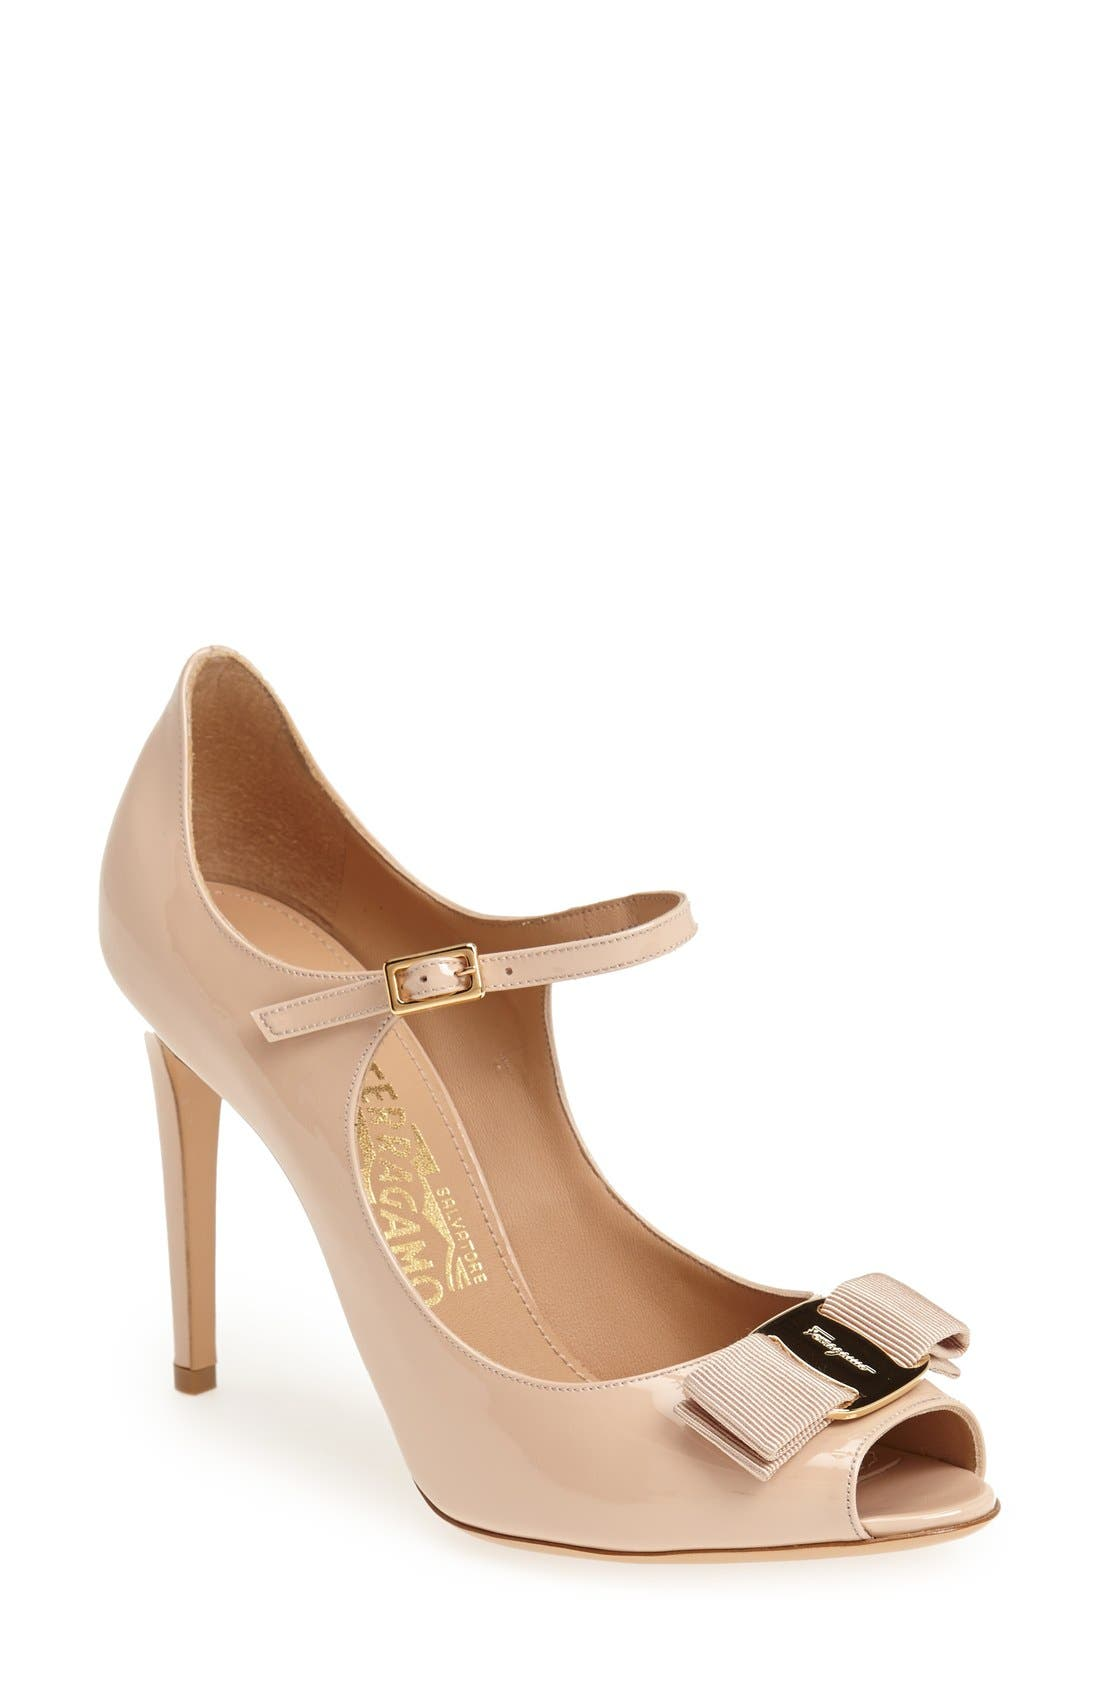 Main Image - Salvatore Ferragamo 'Mood' Pump (Women)